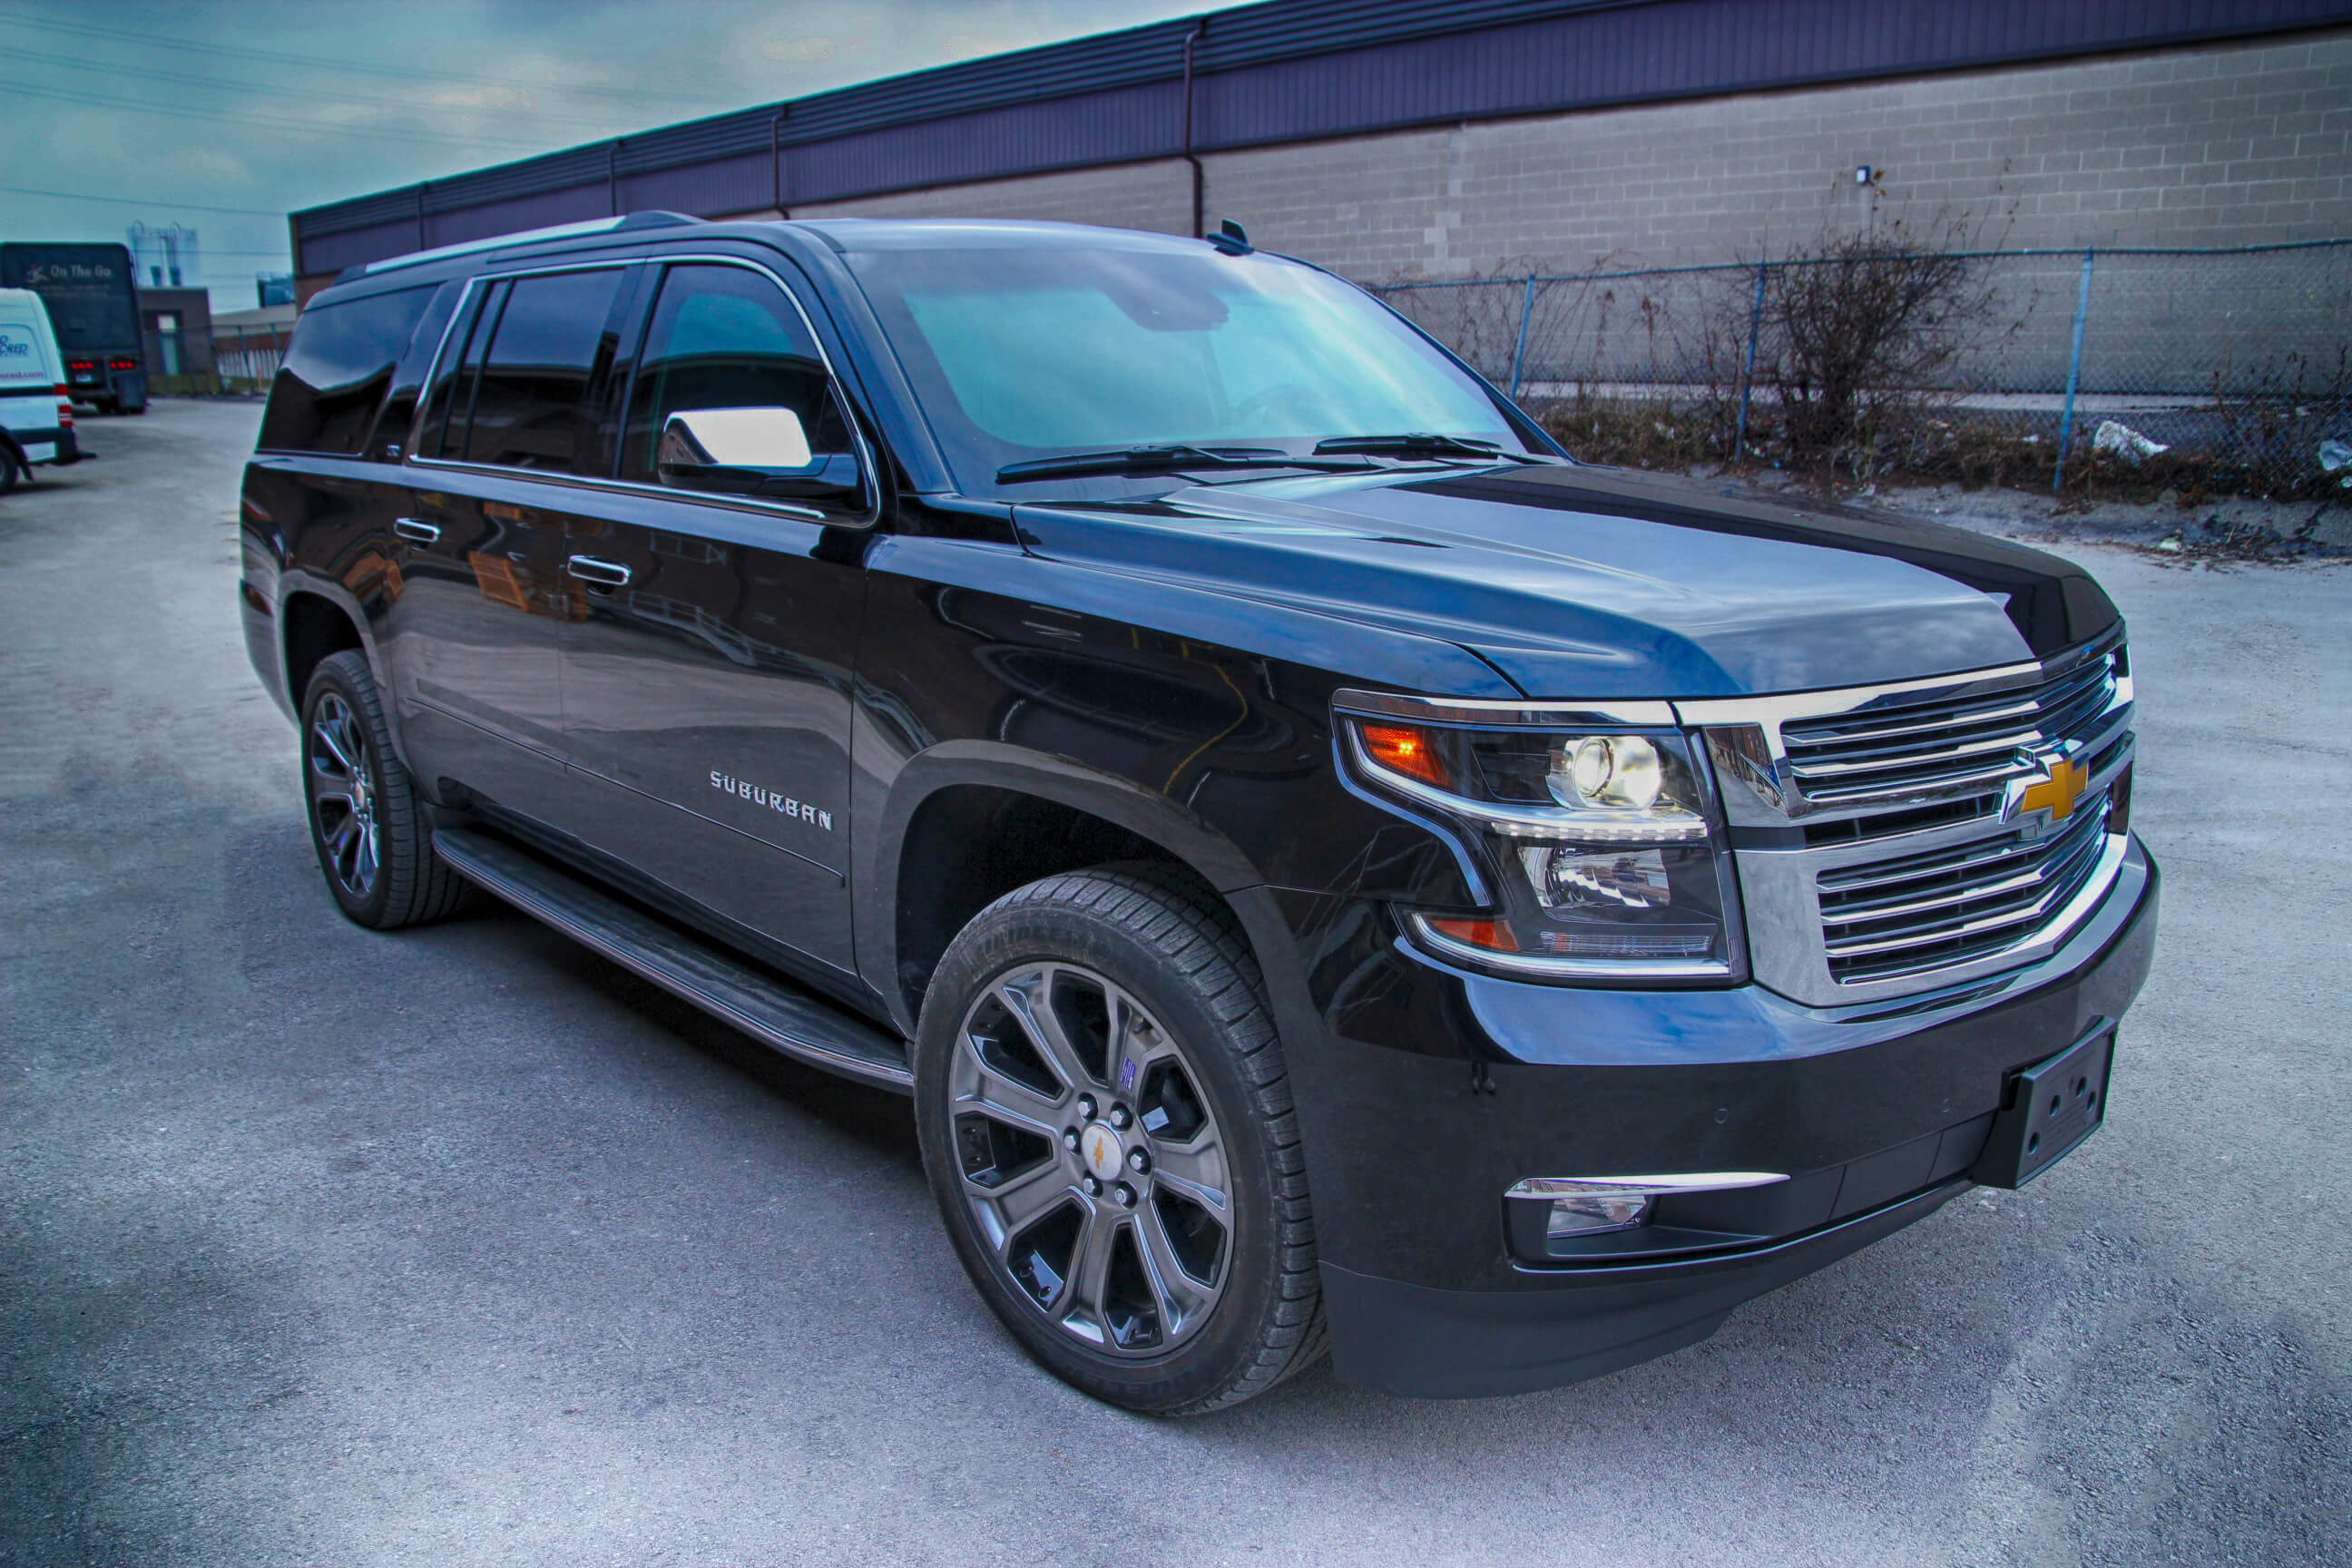 armored suburban 1500 bulletproof chevrolet suv the armored group. Black Bedroom Furniture Sets. Home Design Ideas